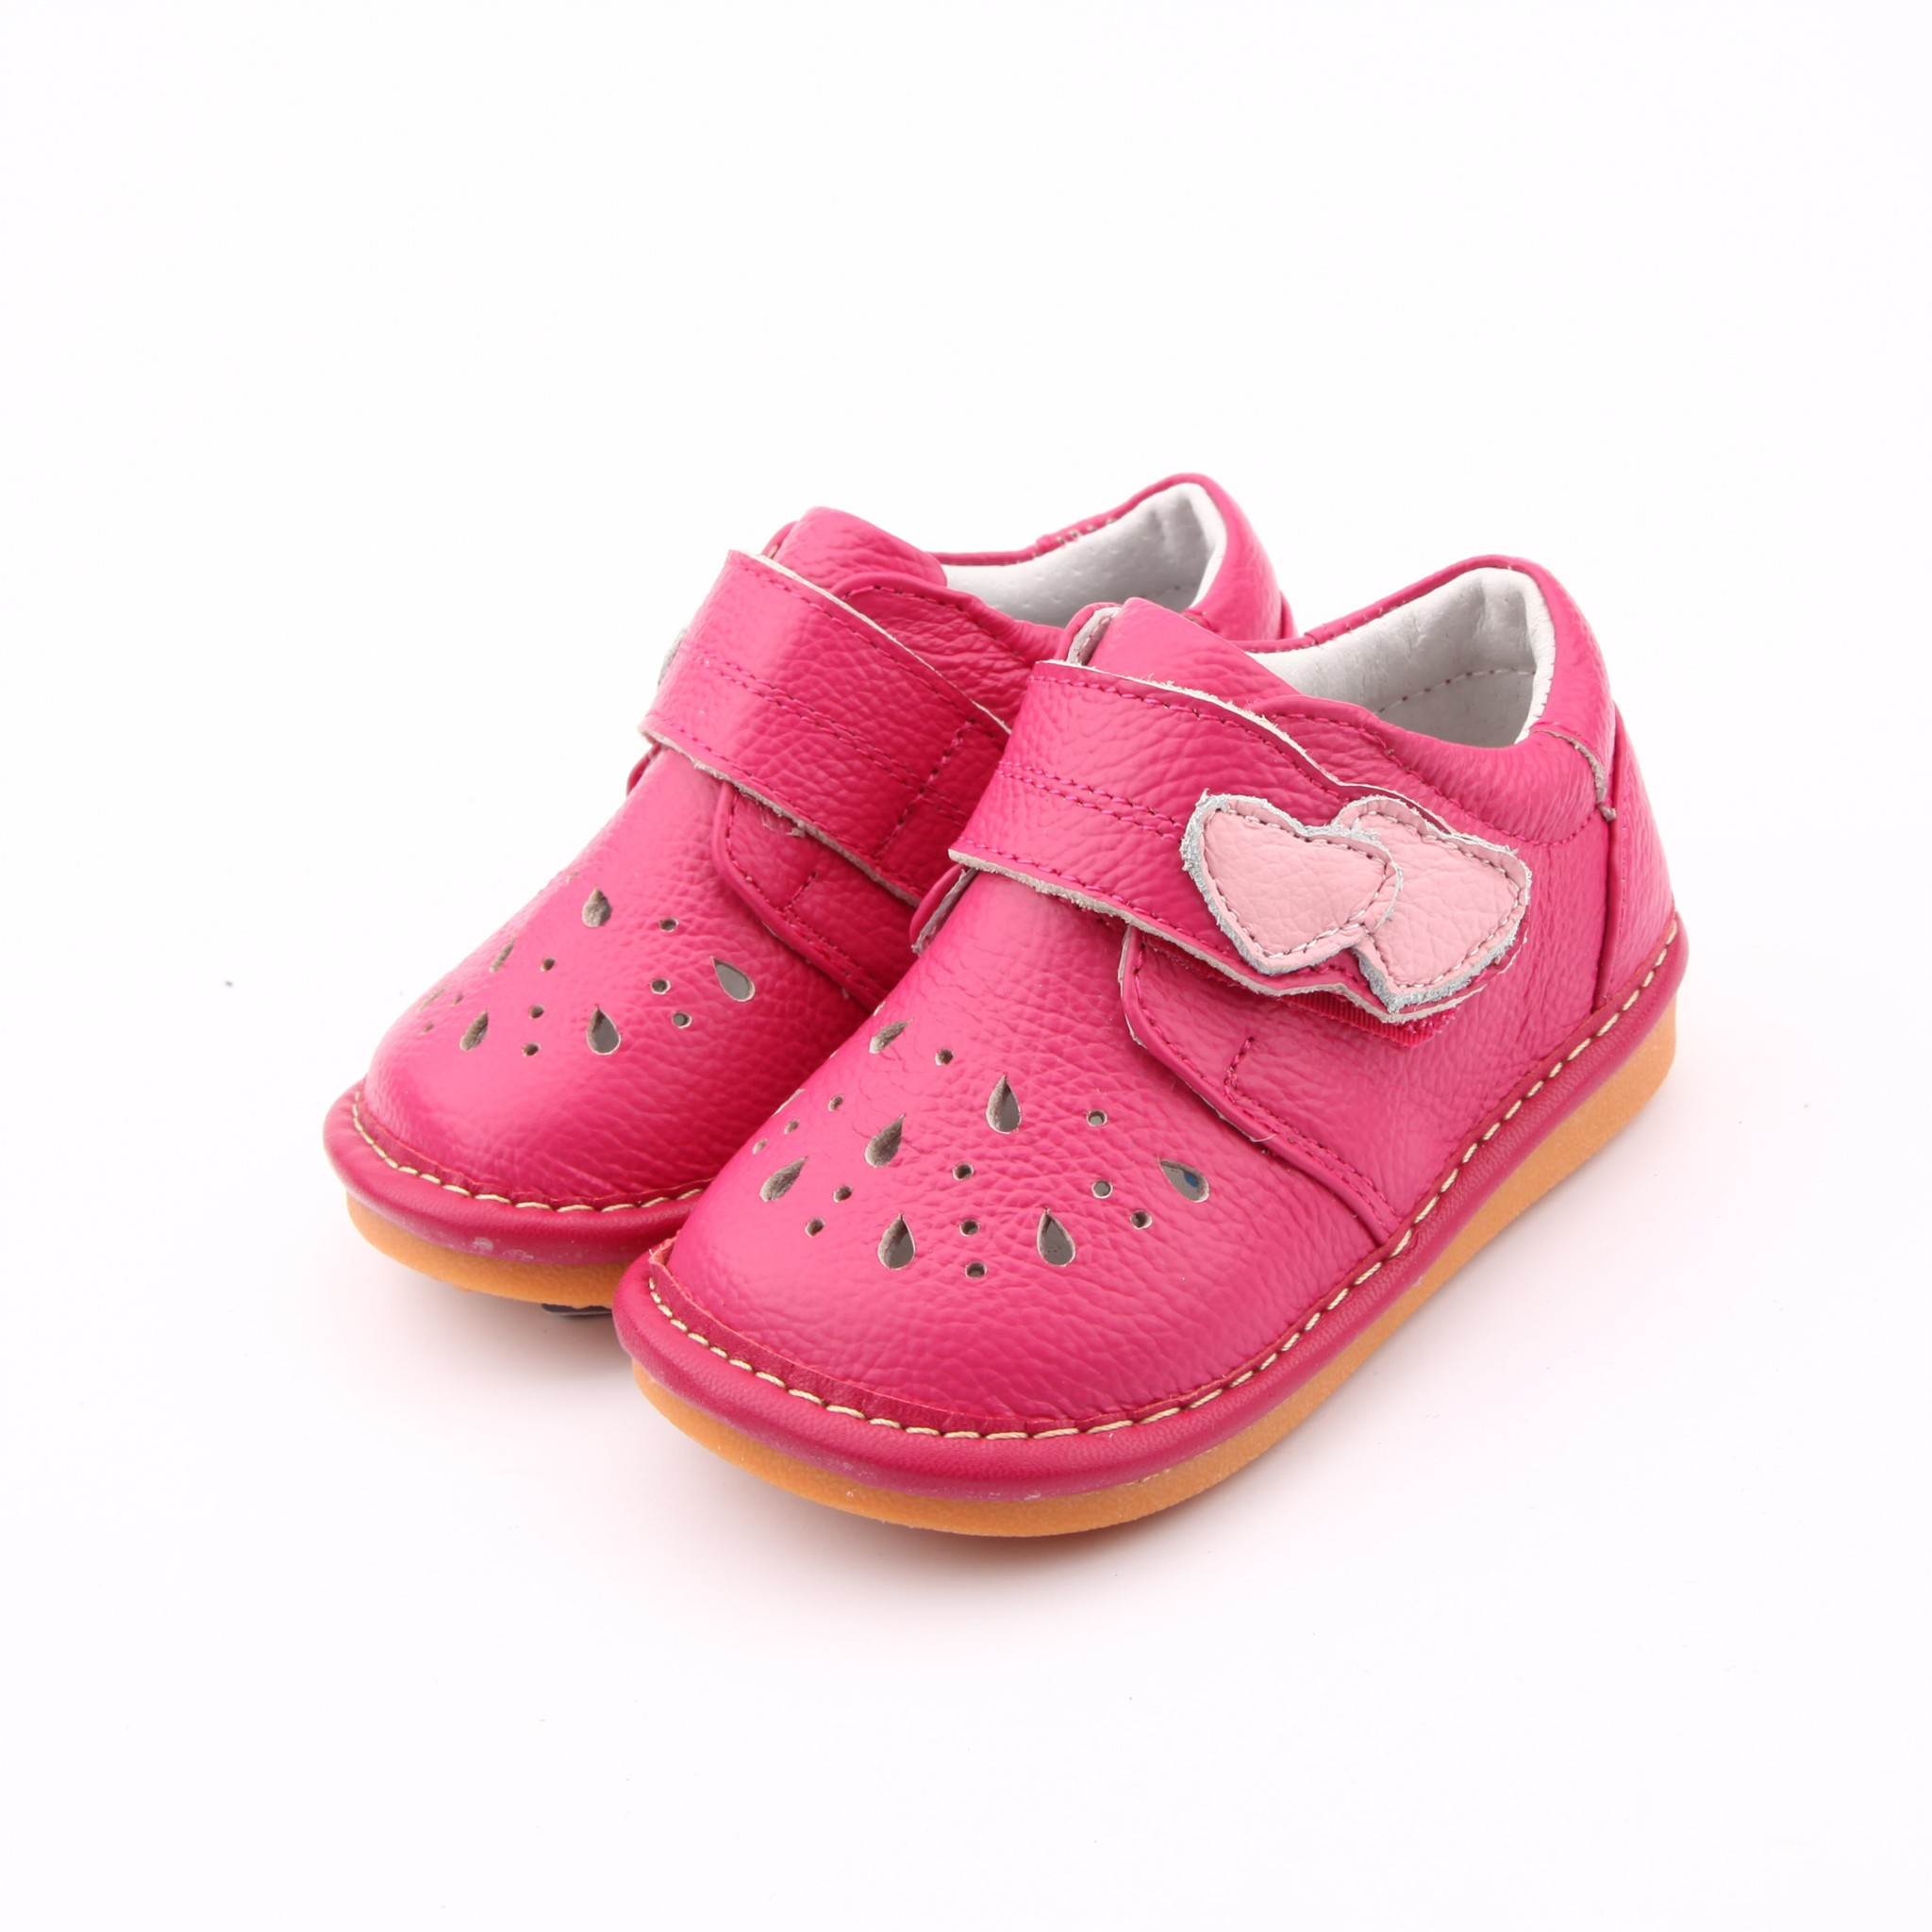 5487fa4327d1e Maisy - Hot Pink - toddler shoes